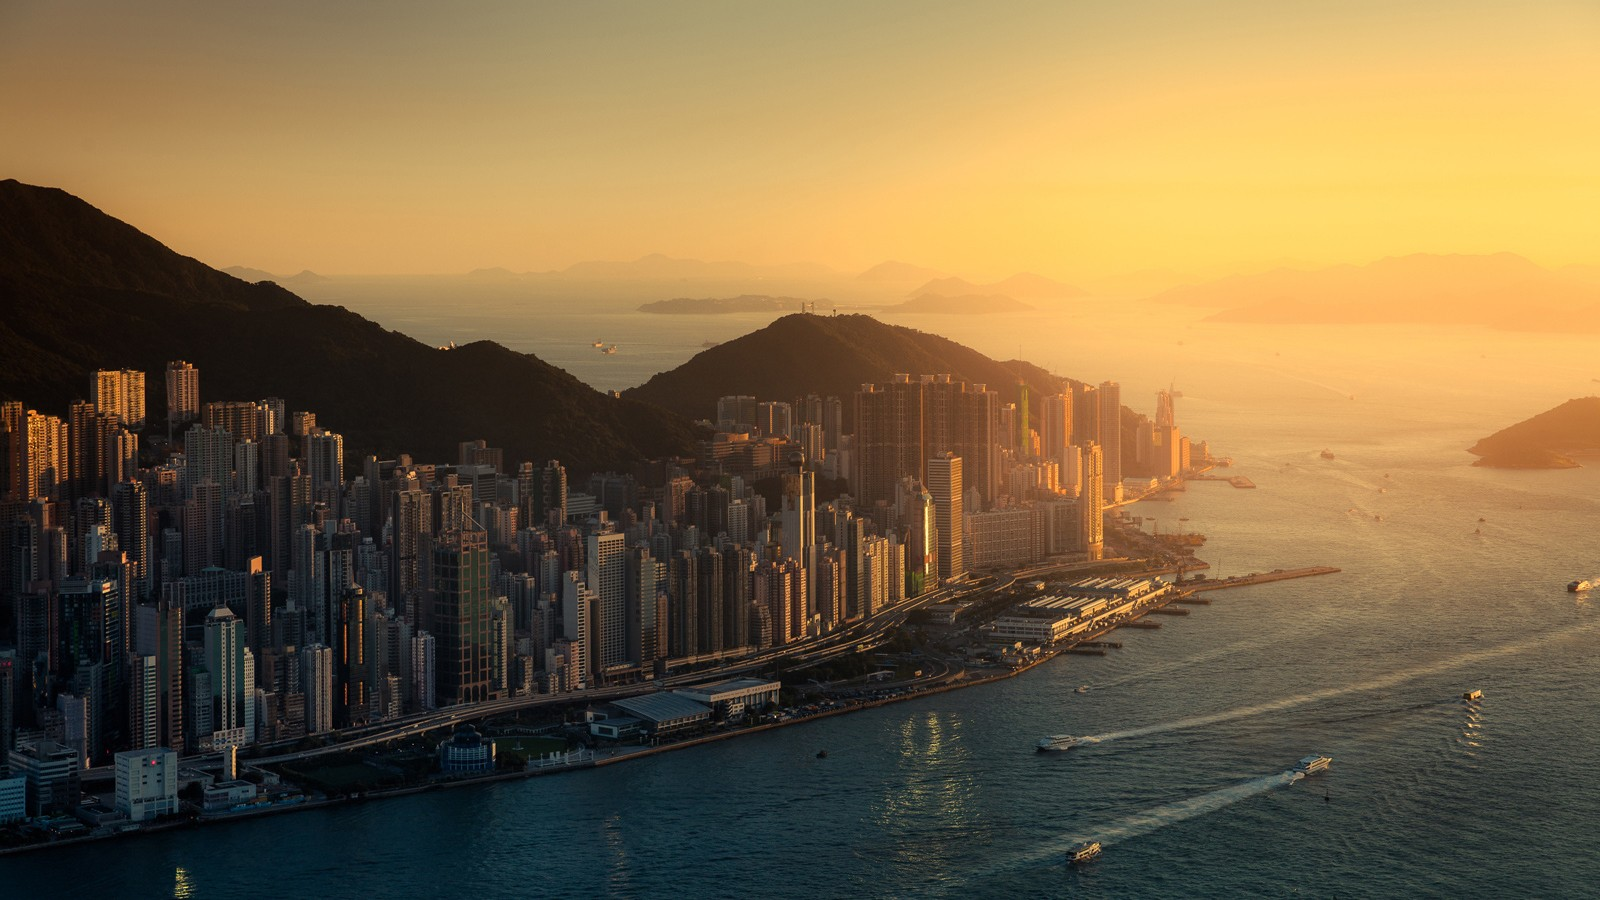 Hong kong wallpaper and background image 1600x900 id 434782 wallpaper abyss - Wallpapers 1600x900 ...